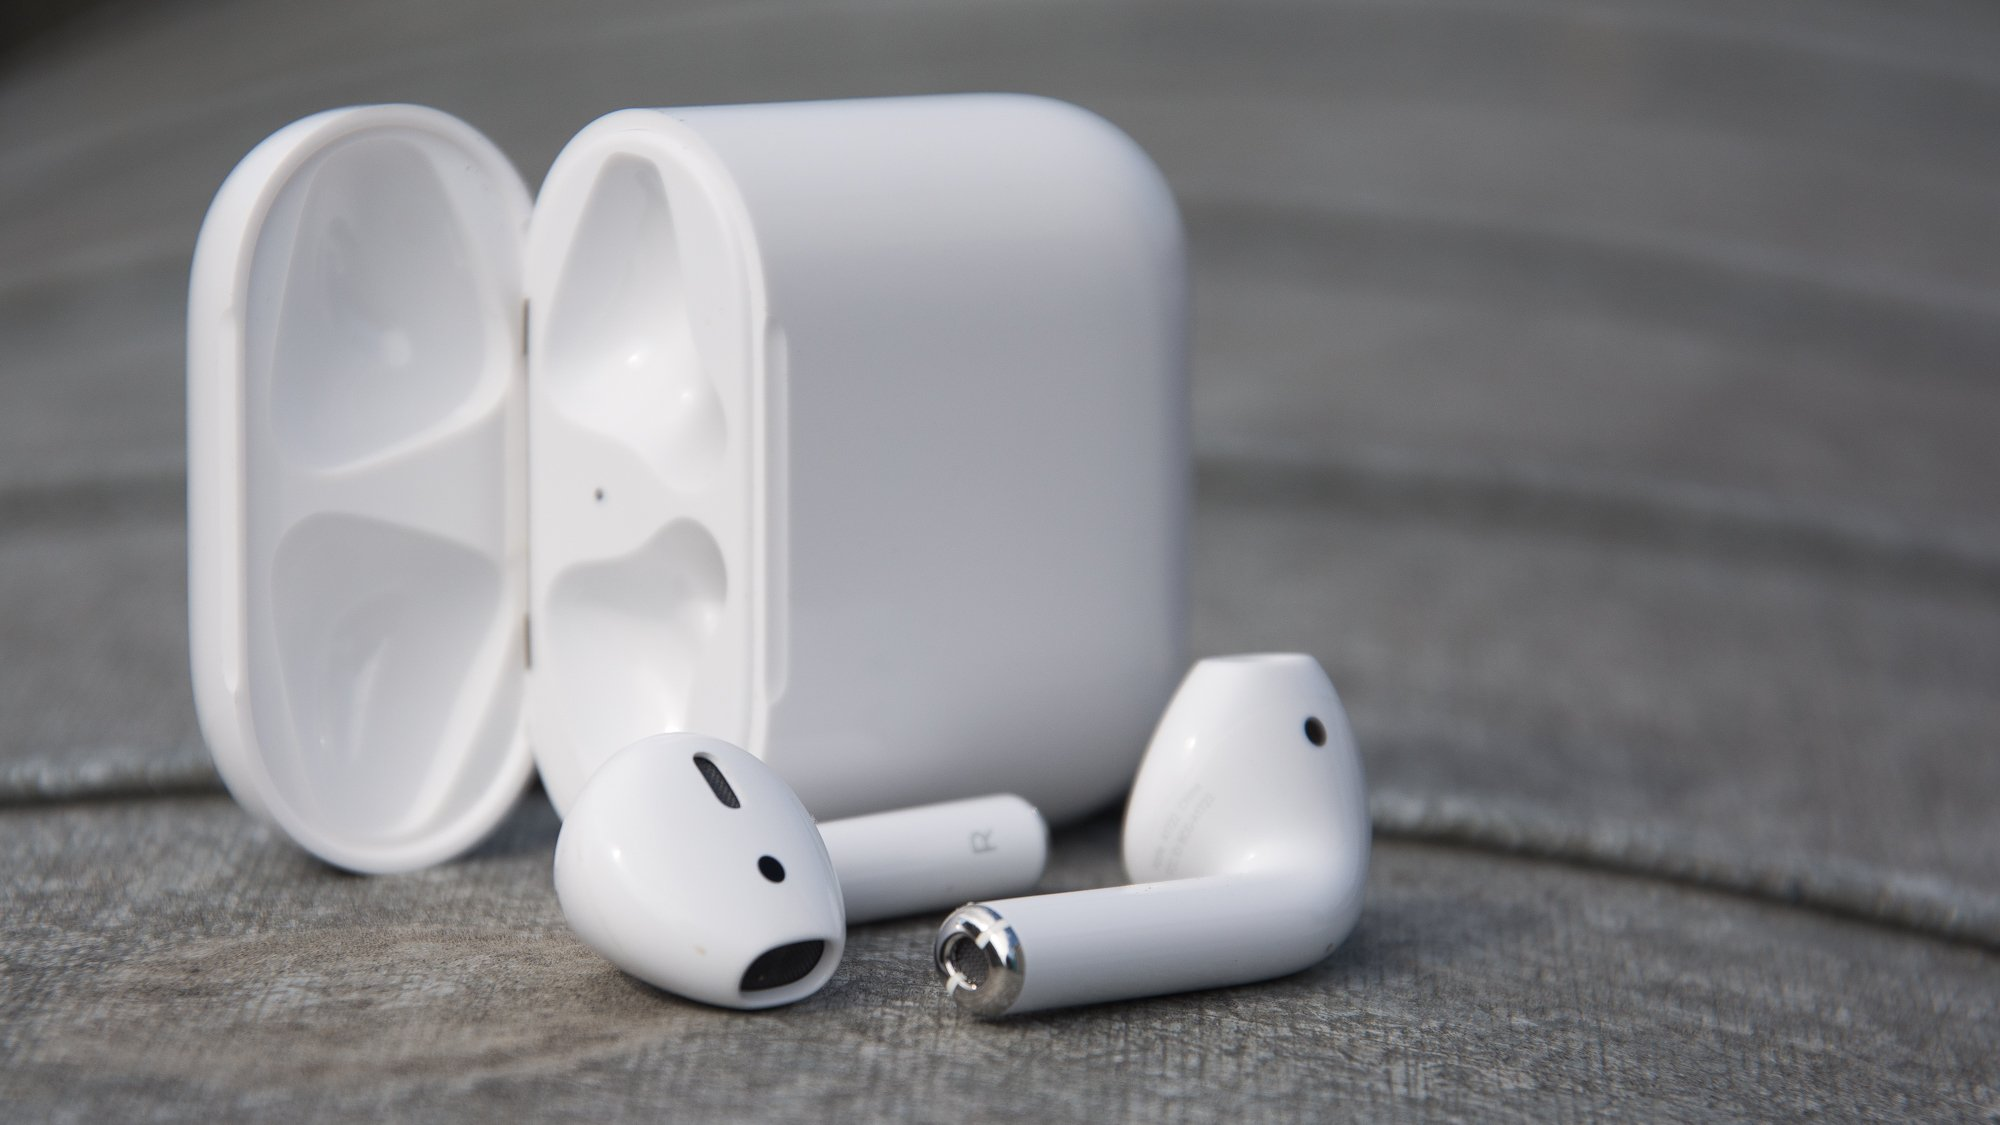 2ce6e40ec35 Apple AirPods review: Save £10 on these brilliant buds | Expert Reviews